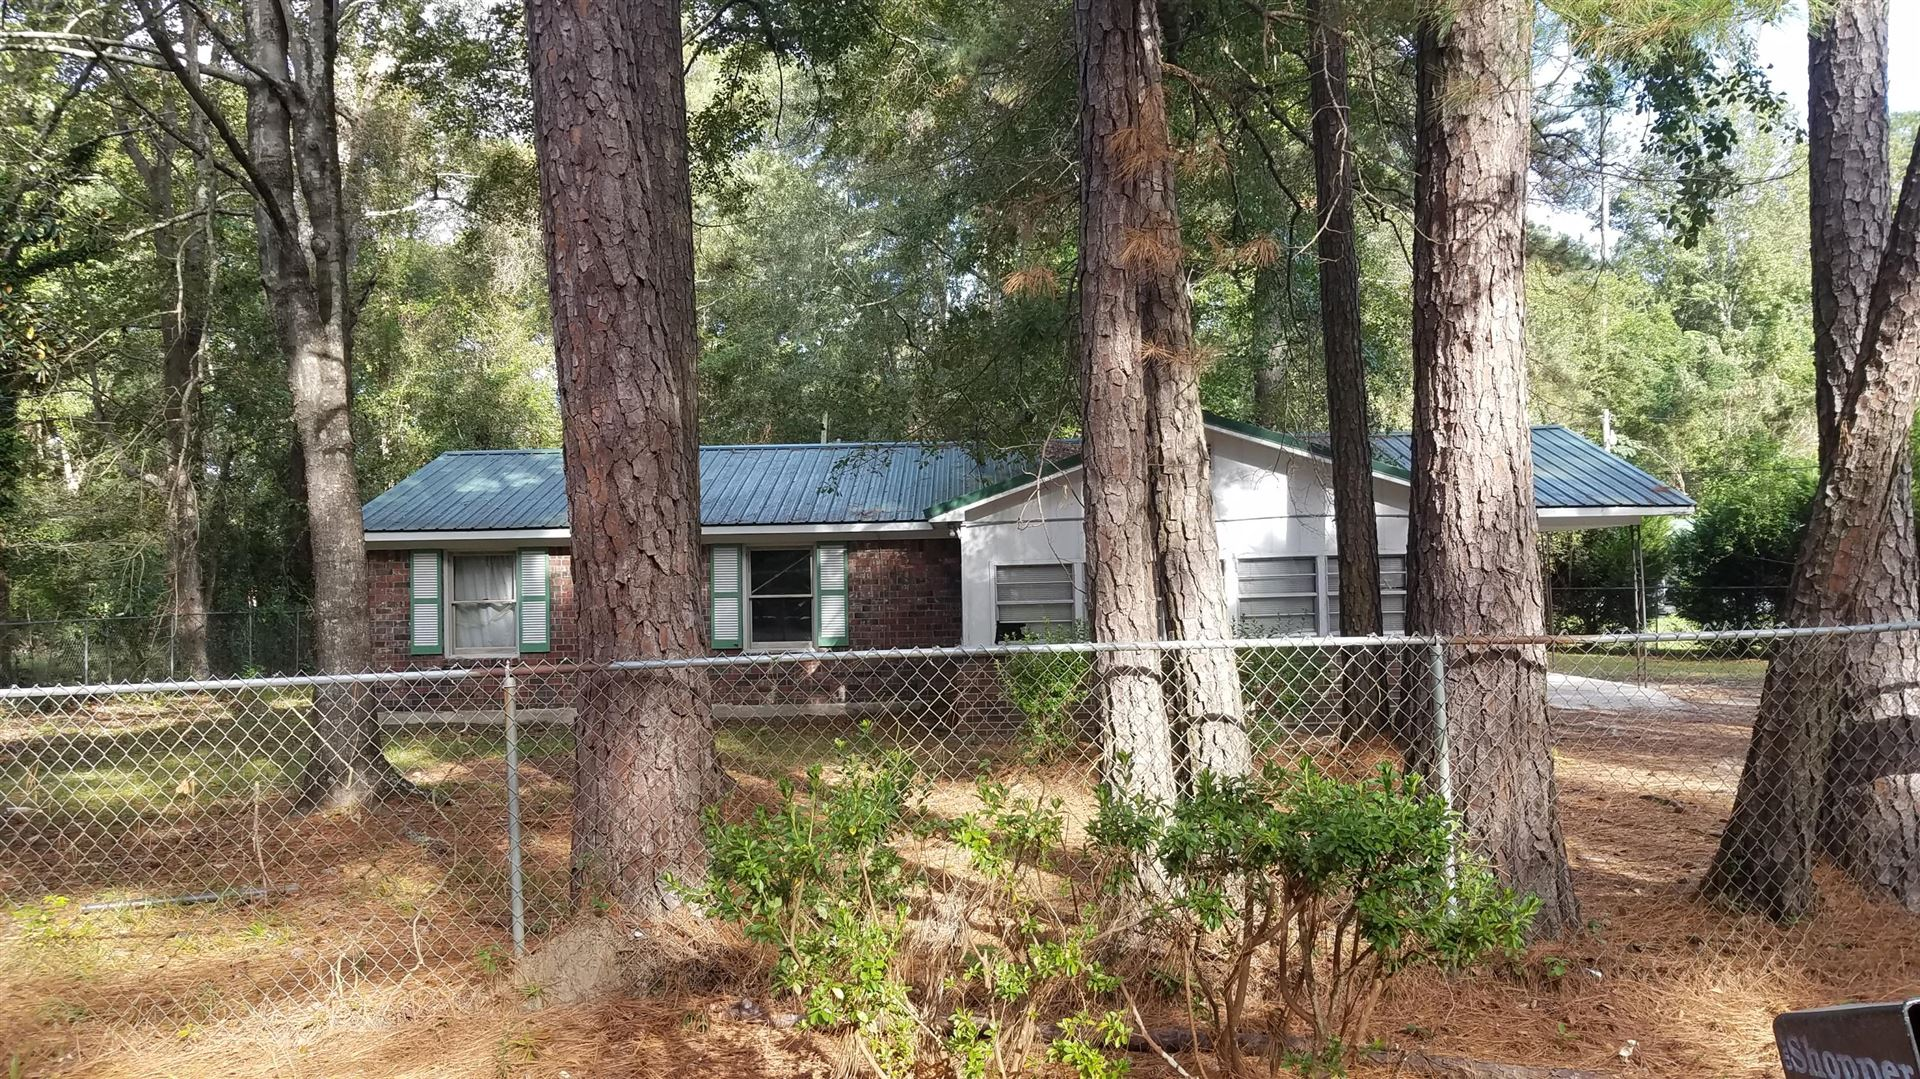 Photo of 209 Gadsden Loop, Walterboro, SC 29488 (MLS # 20029310)